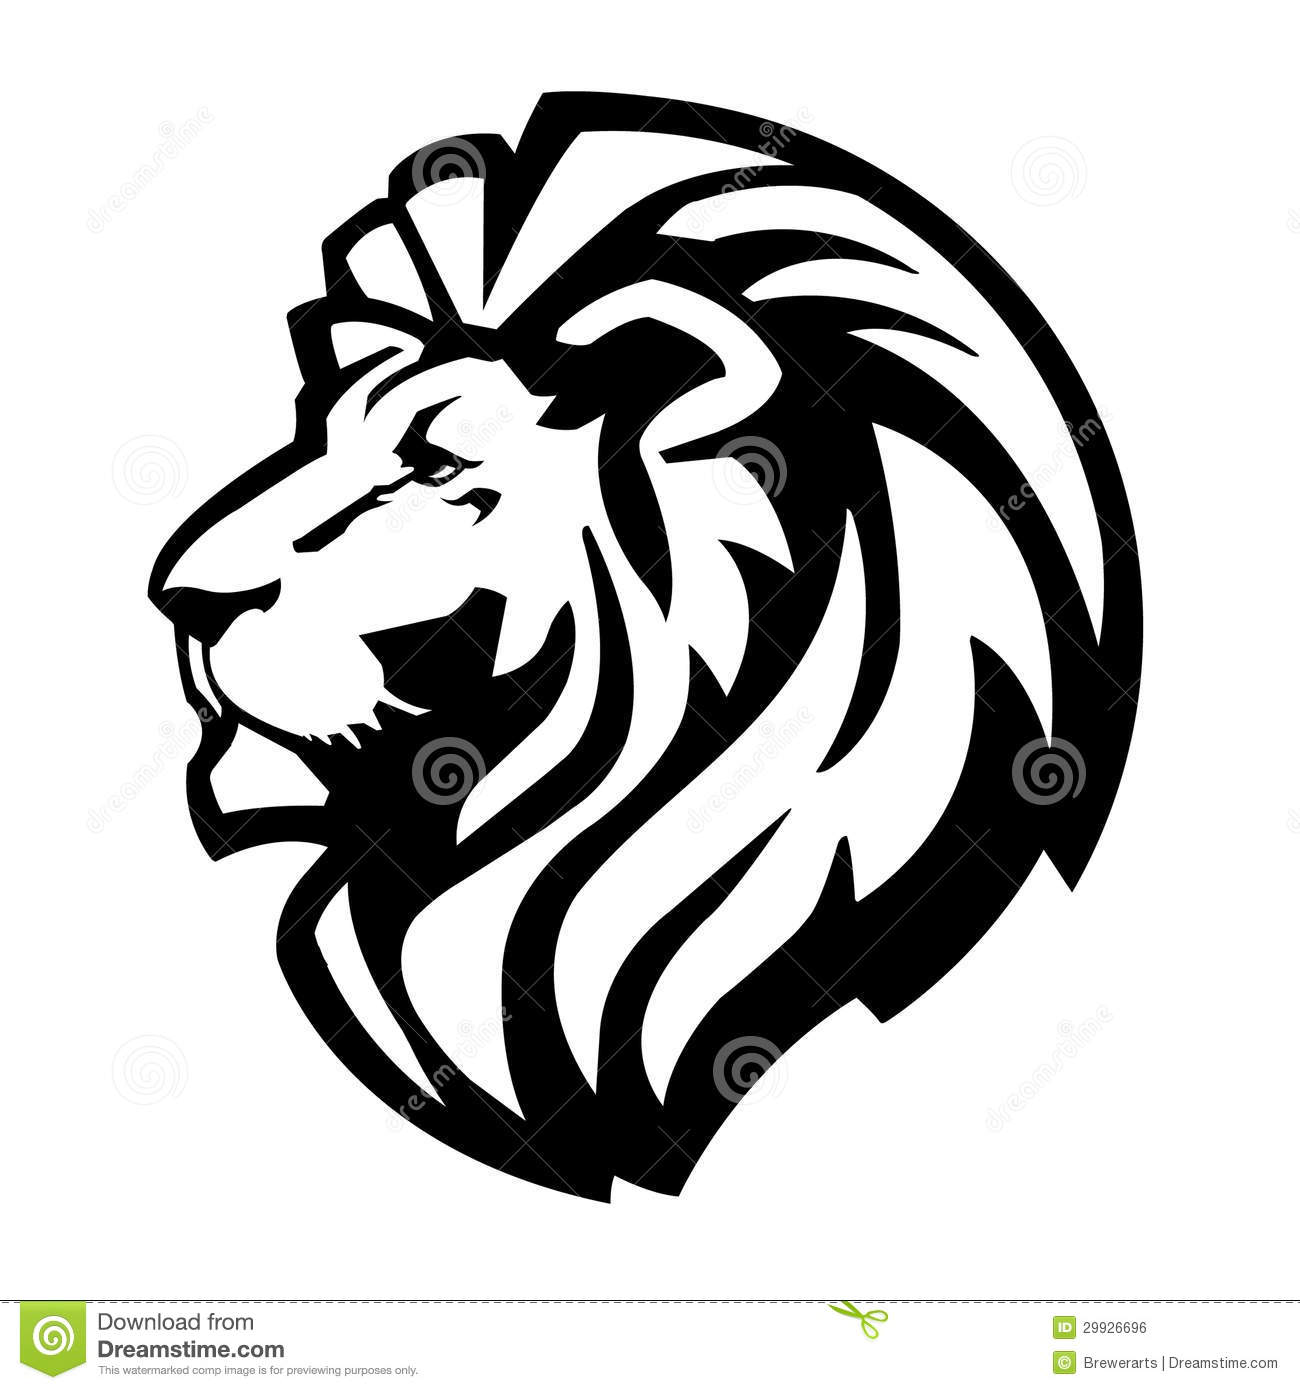 simple, icon of a lions head.